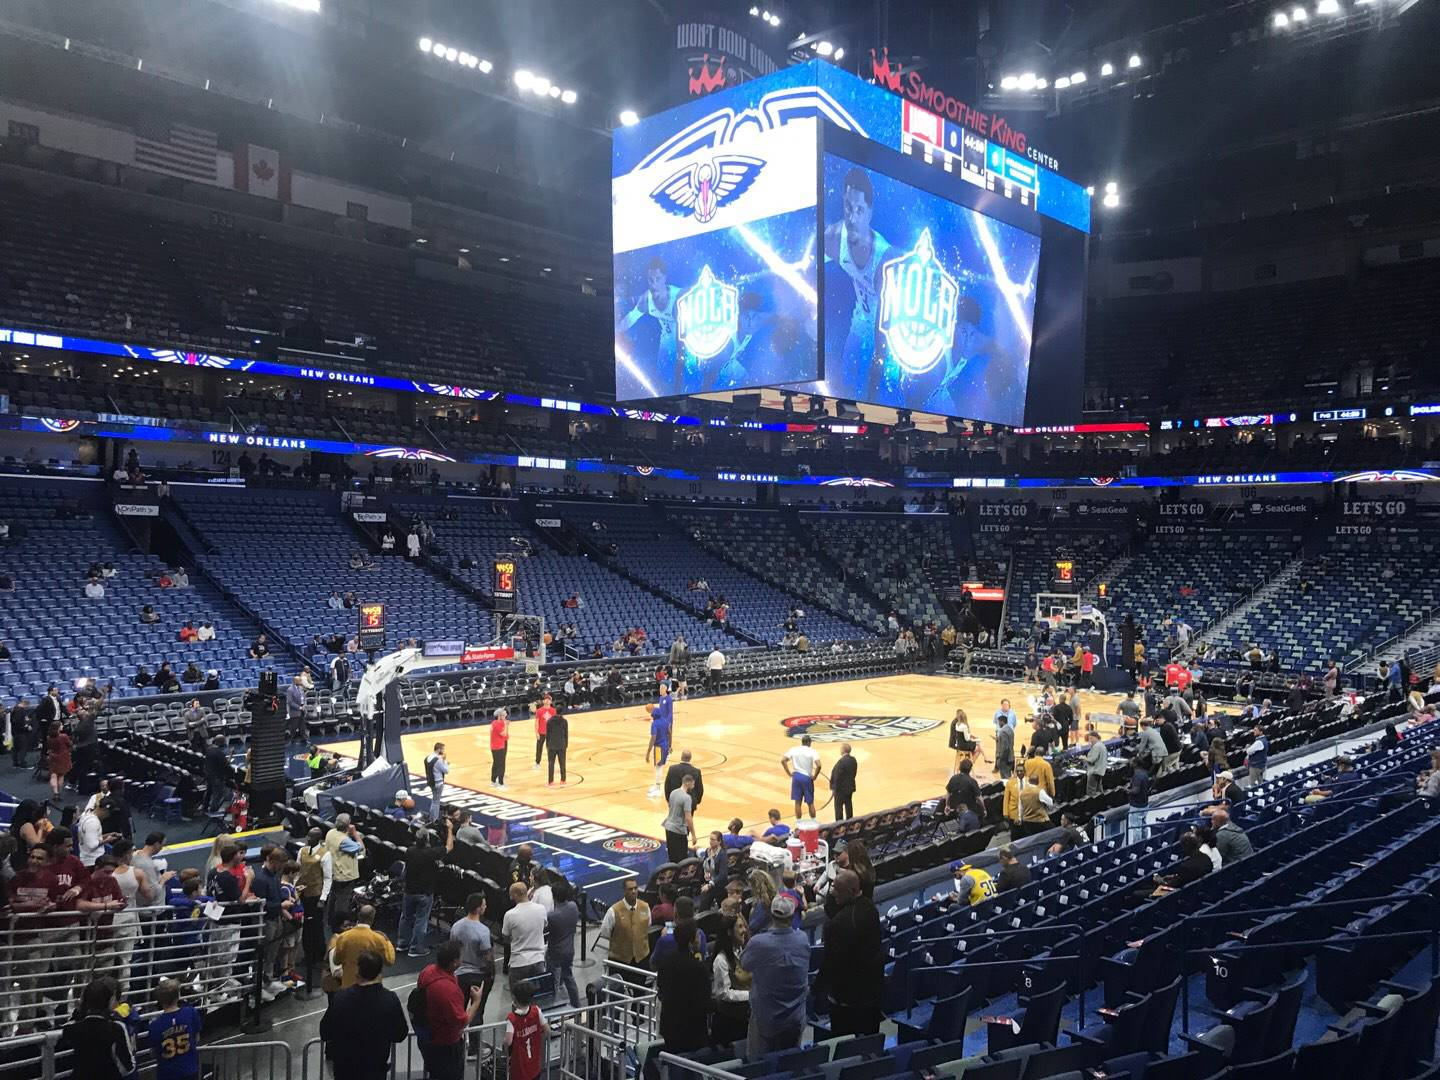 Smoothie King Center Section 116 Row 18 Seat 3